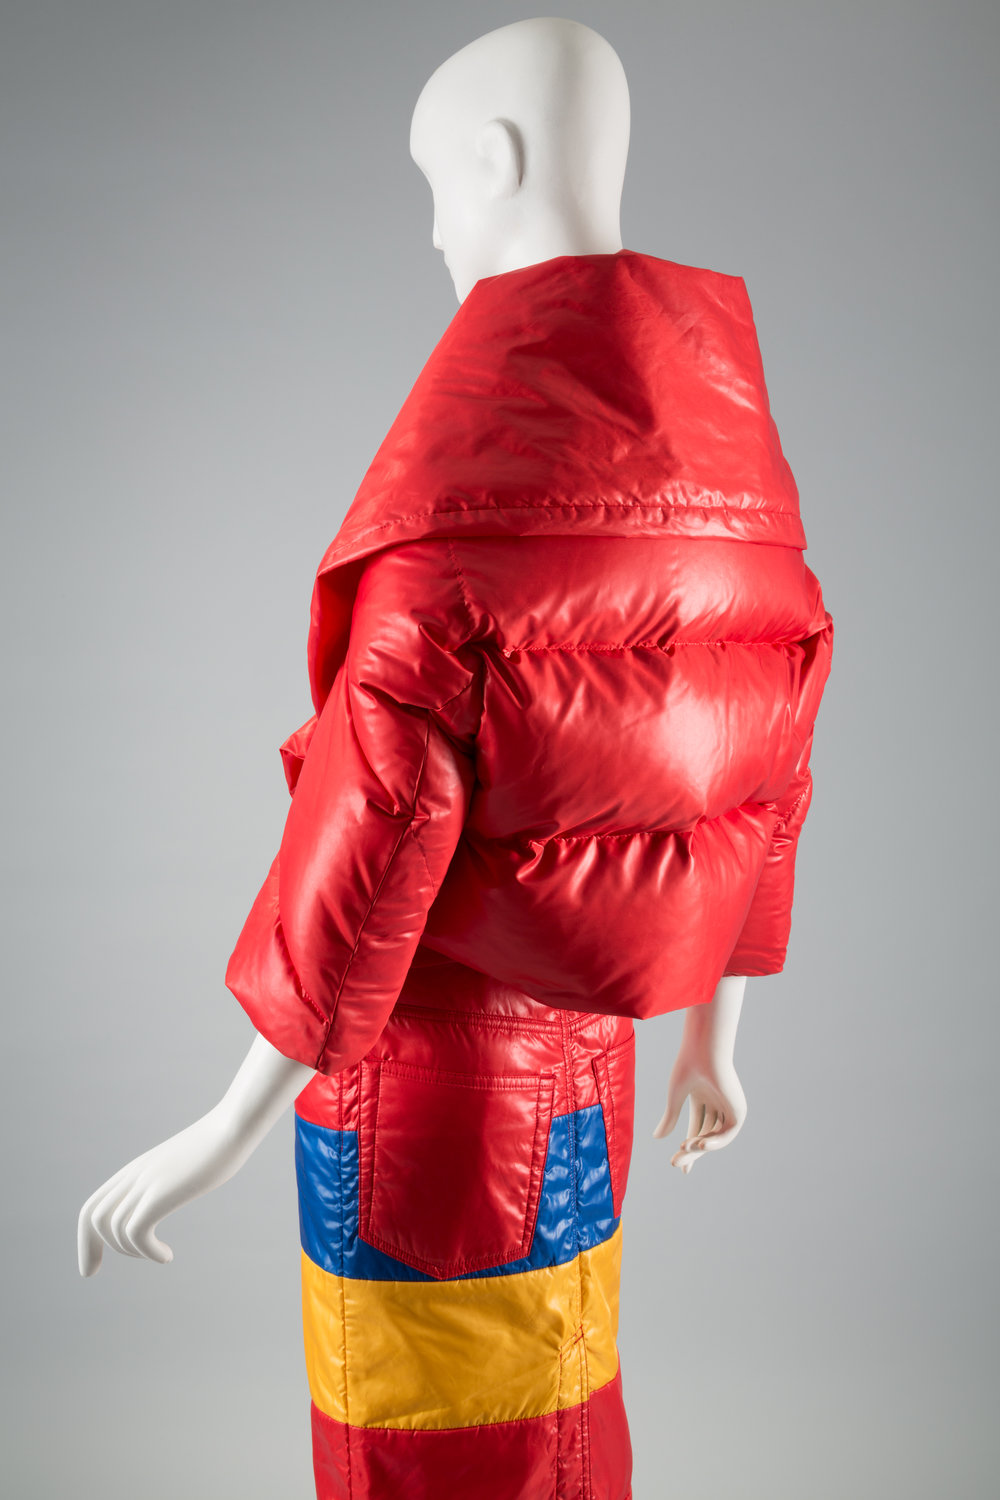 Expedition: Fashion from the Extreme Junya Watanabe, Comme des Garçons, ensemble, fall/winter 2004, Japan. © The Museum at FIT